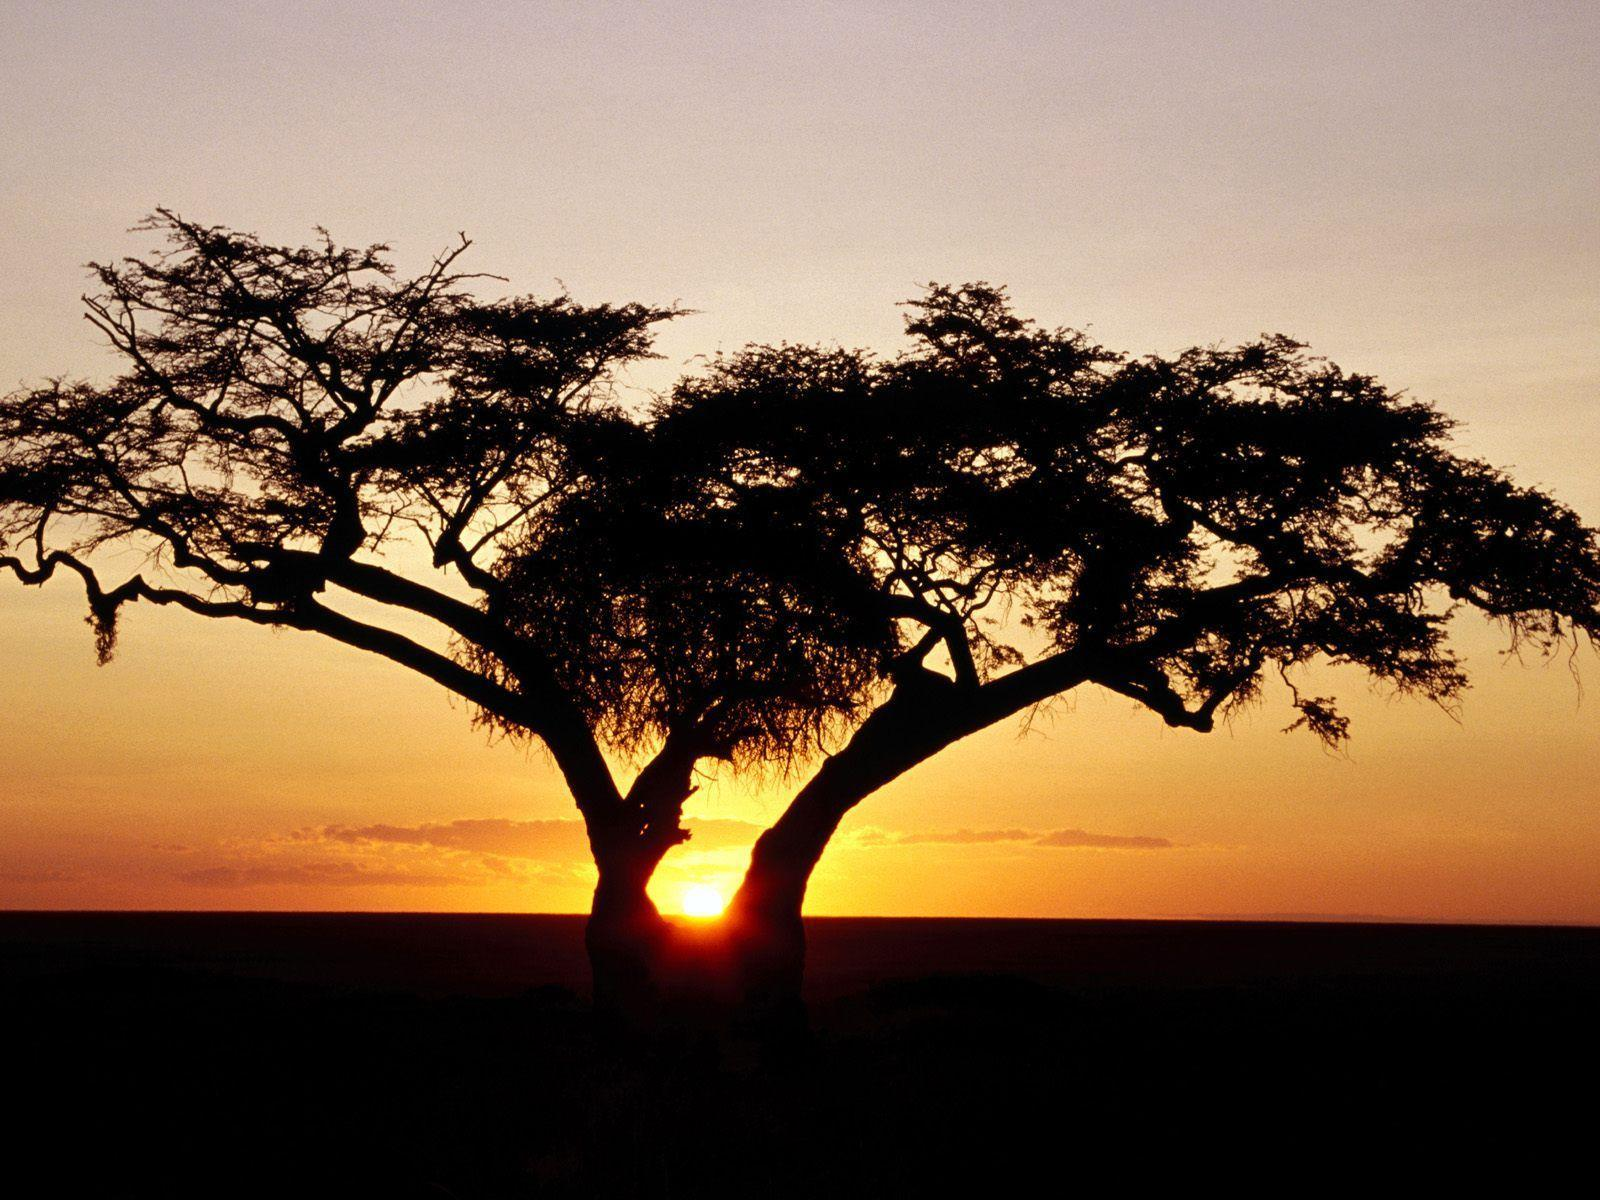 Sunrise, Africa desktop wallpapers